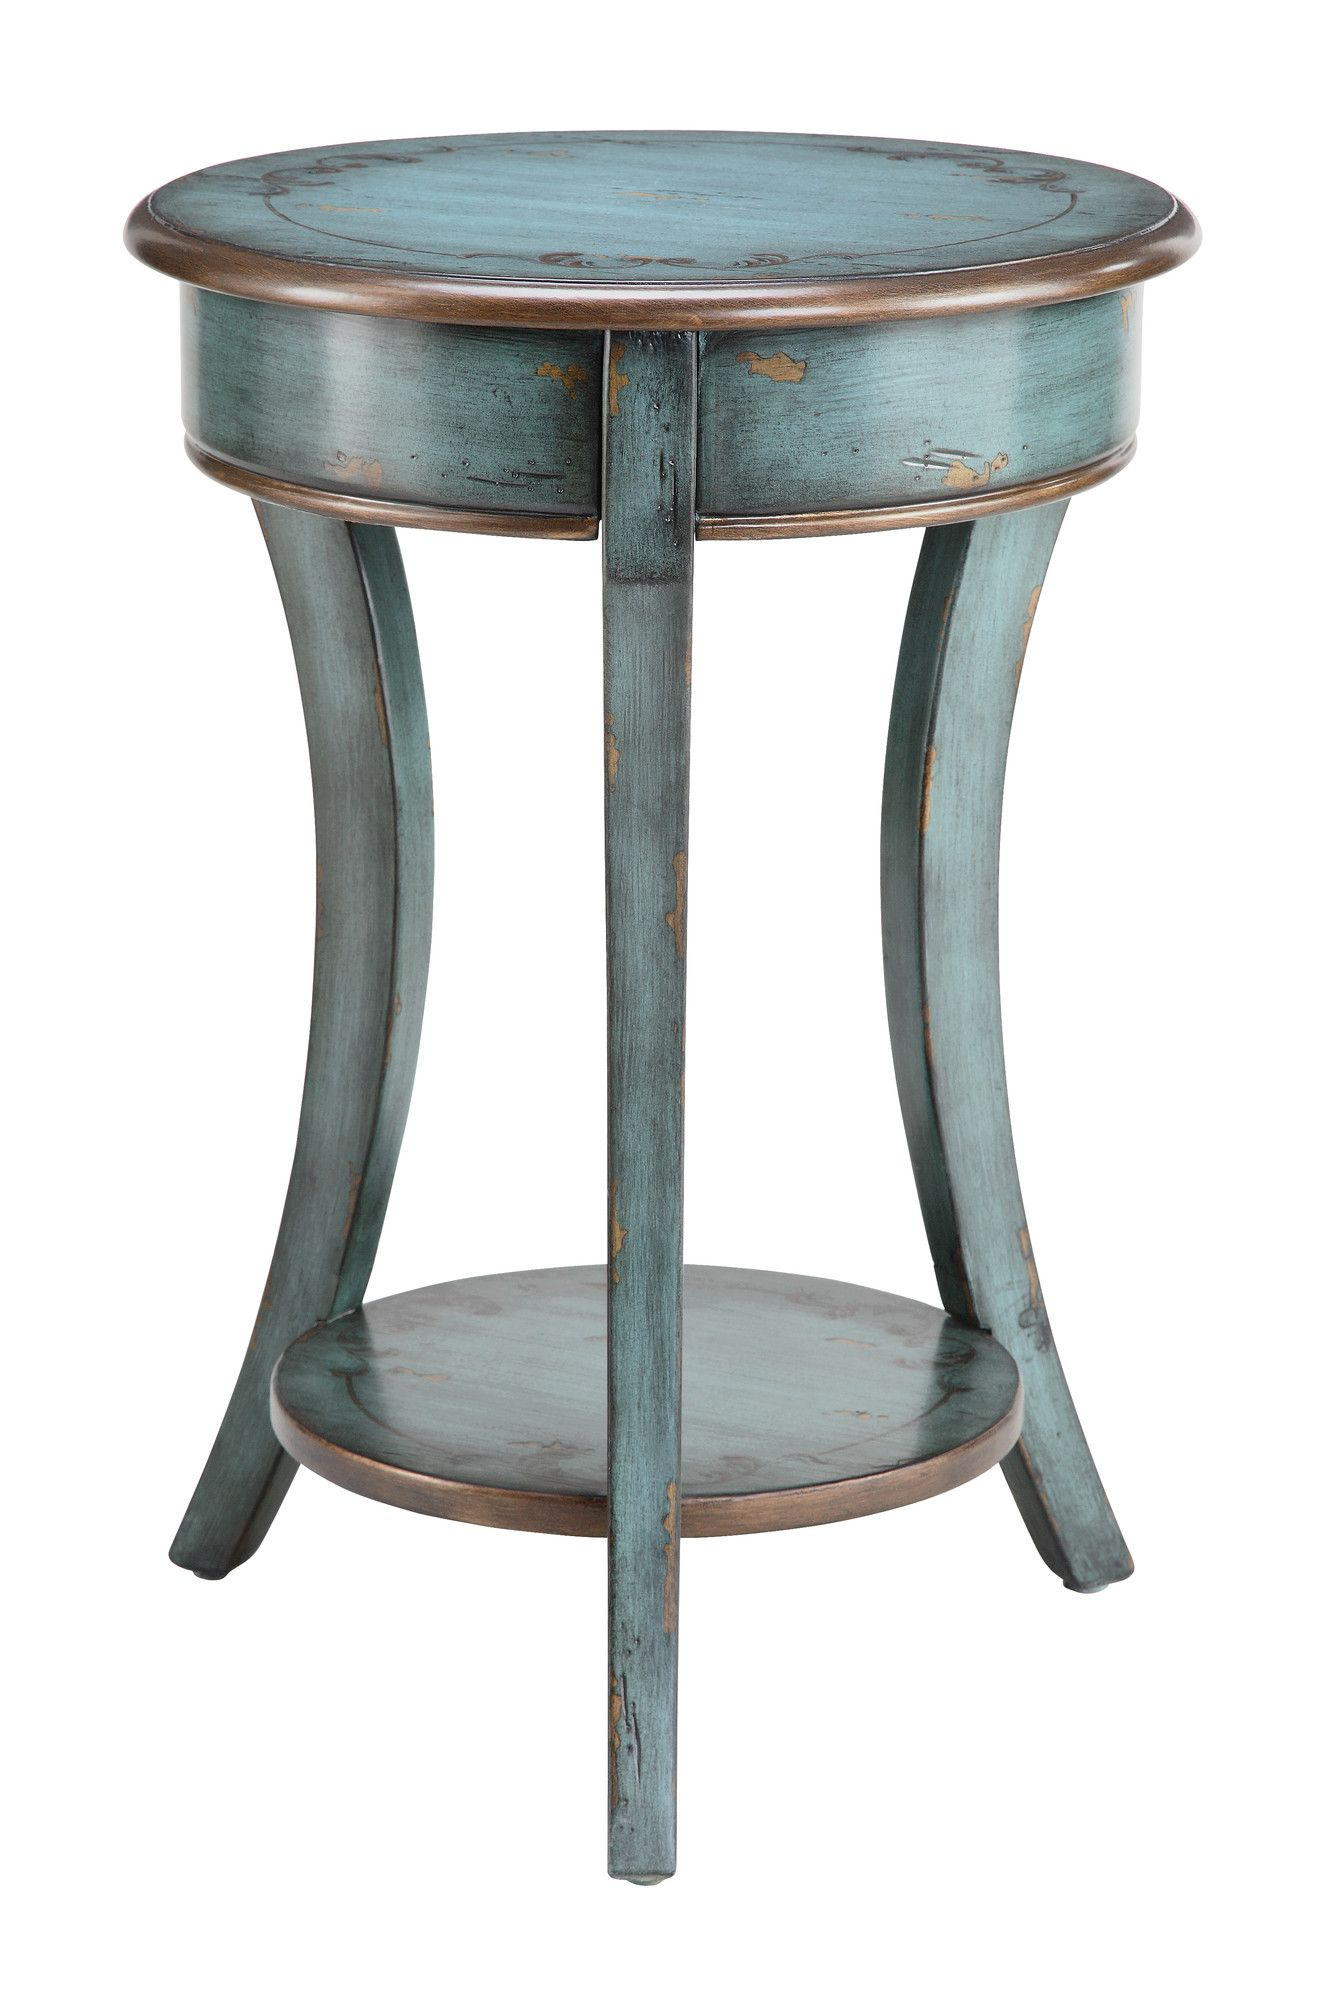 stein world painted treasures end table bronzed and distressed paint round accent job corner with drawer patio dining set bench black metal stools pub meyda tiffany shades pottery